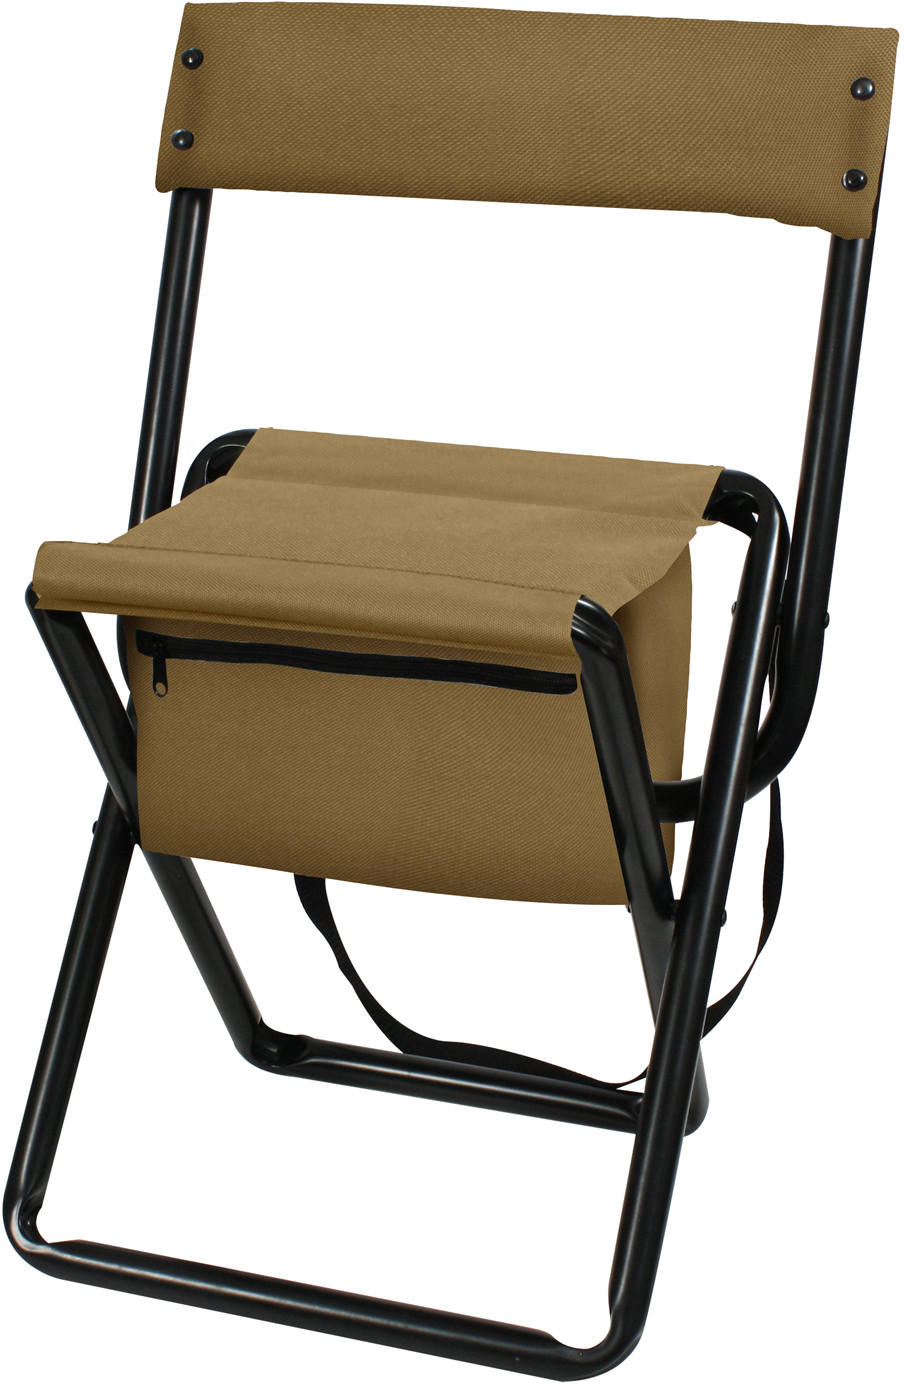 Coyote Brown Deluxe Folding Chair Stool with Storage Pouch